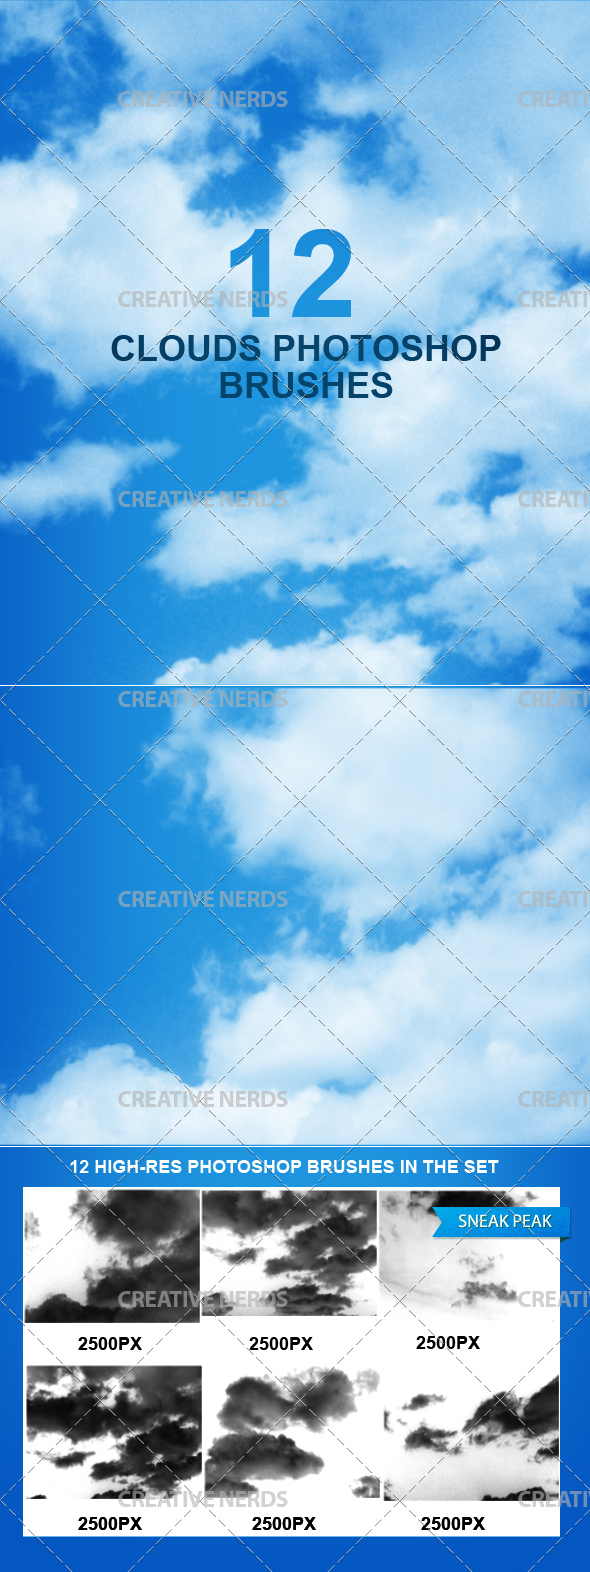 clound brushes preview 12 high Resolution Cloud Photoshop Brushes